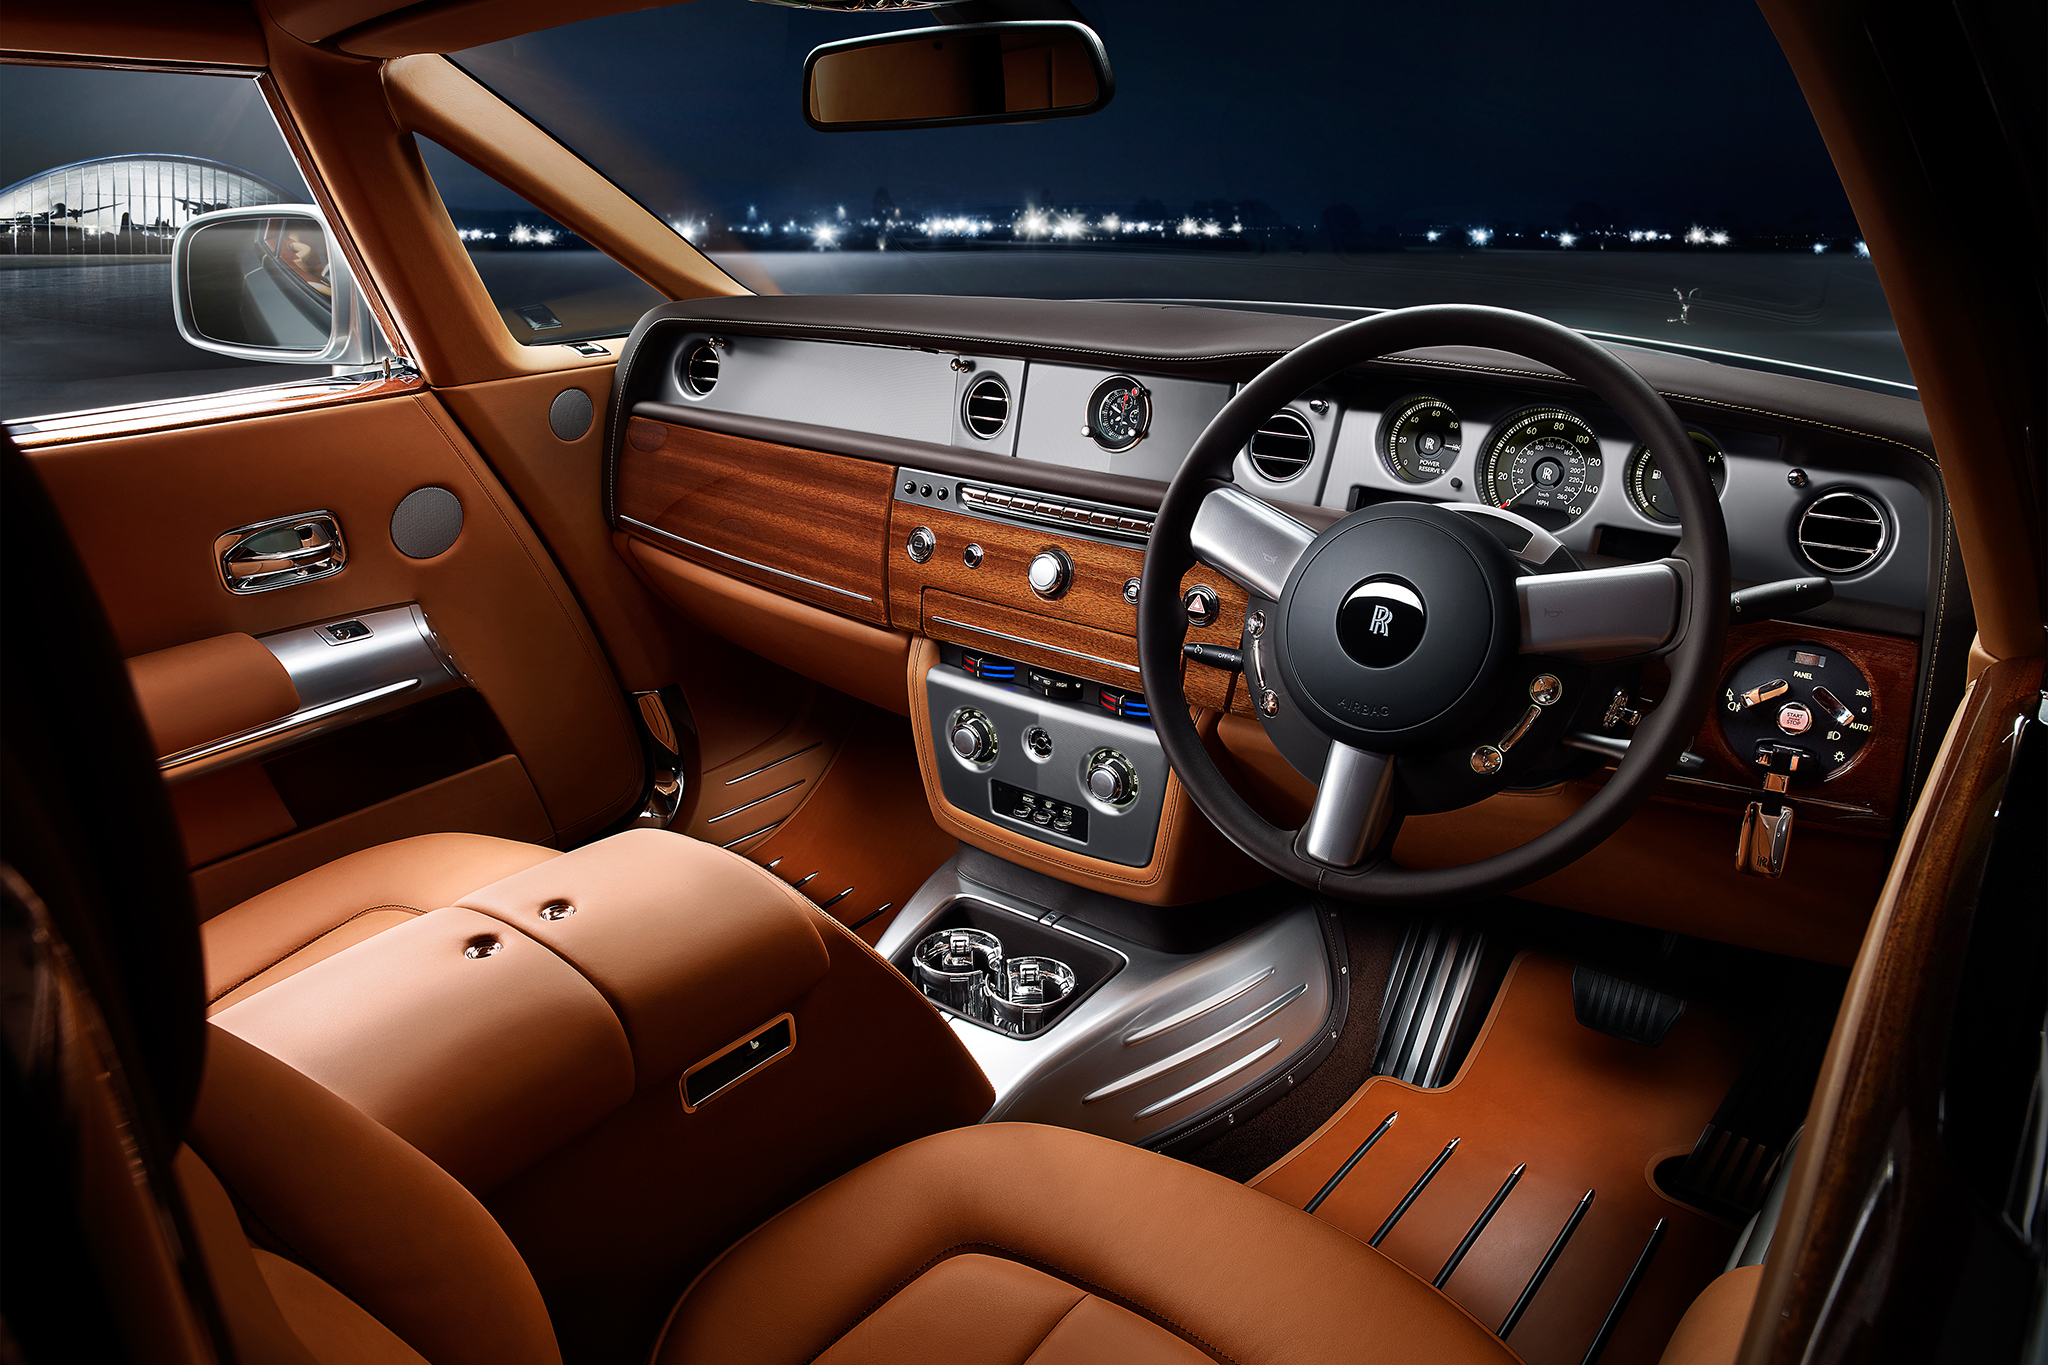 2013 Rolls royce Phantom #18